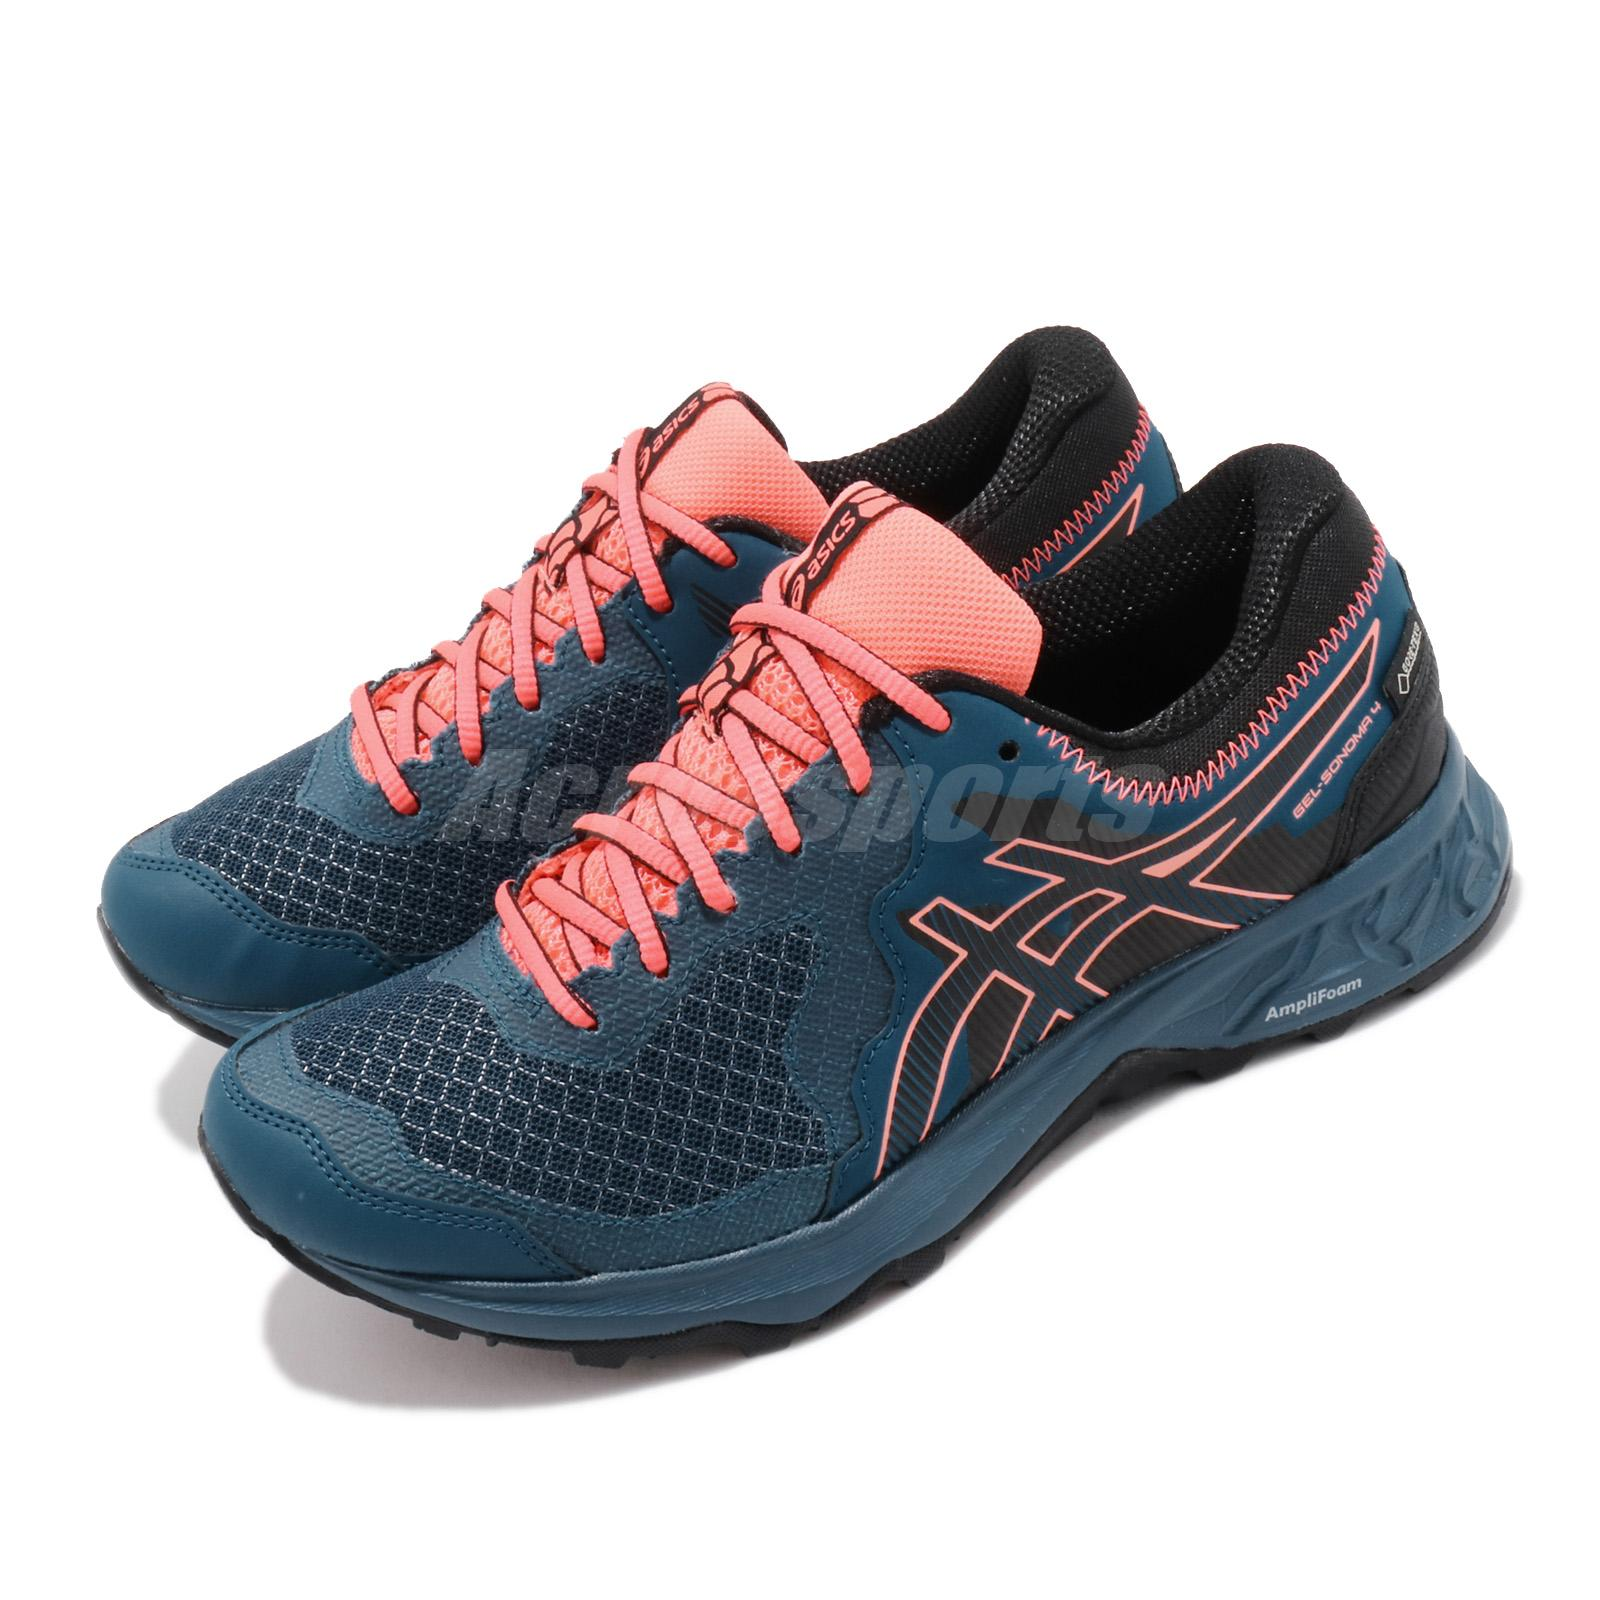 Details about Asics Gel-Sonoma 4 GTX Gore-Tex Mako Blue Coral Women Trail  Running 1012A191-400